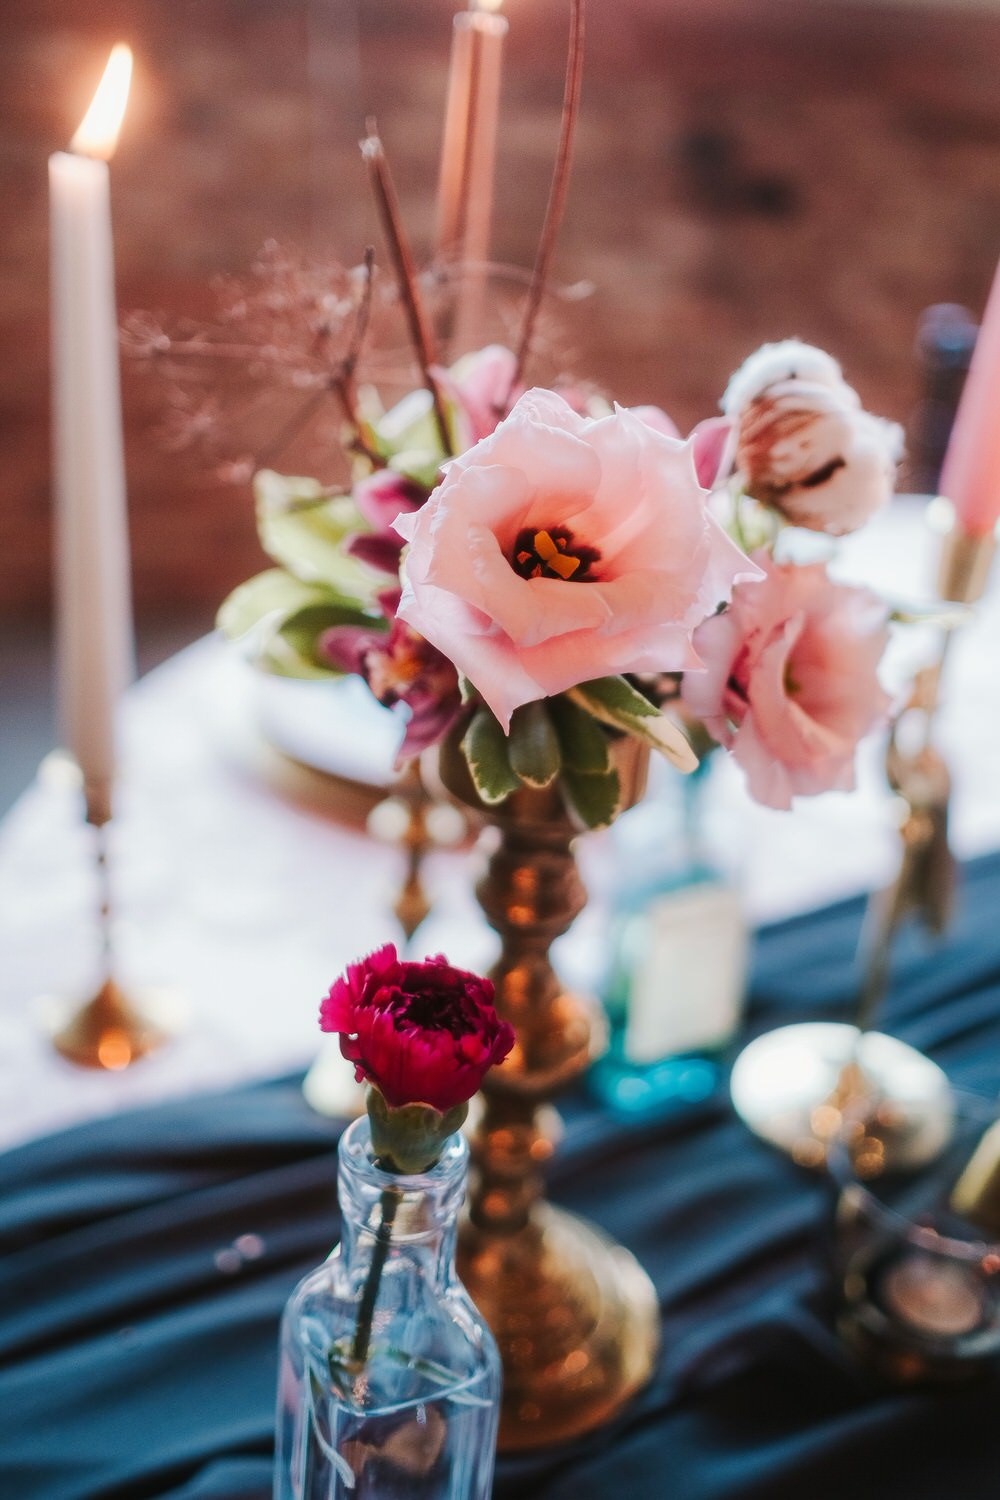 Table Flowers Candlestick Bottle Romantic Wedding Ideas Neon Lighting Kate McCarthy Photography